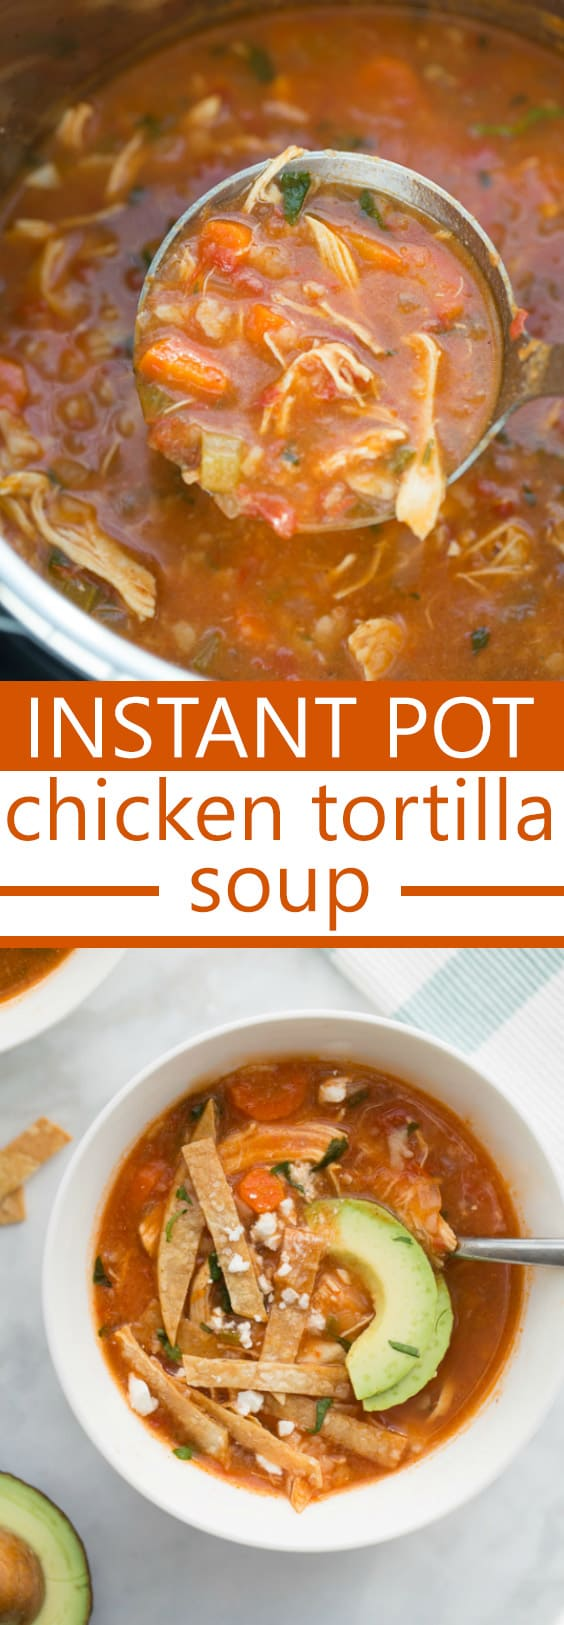 Instant Pot Chicken Tortilla Soup! An easy, healthy, flavorful weeknight dinner!#instantpot #instantpotrecipes #instantpotsoup #glutenfreeinstantpot #glutenfreedinnerrecipes #glutenfree #healthyinstantpot